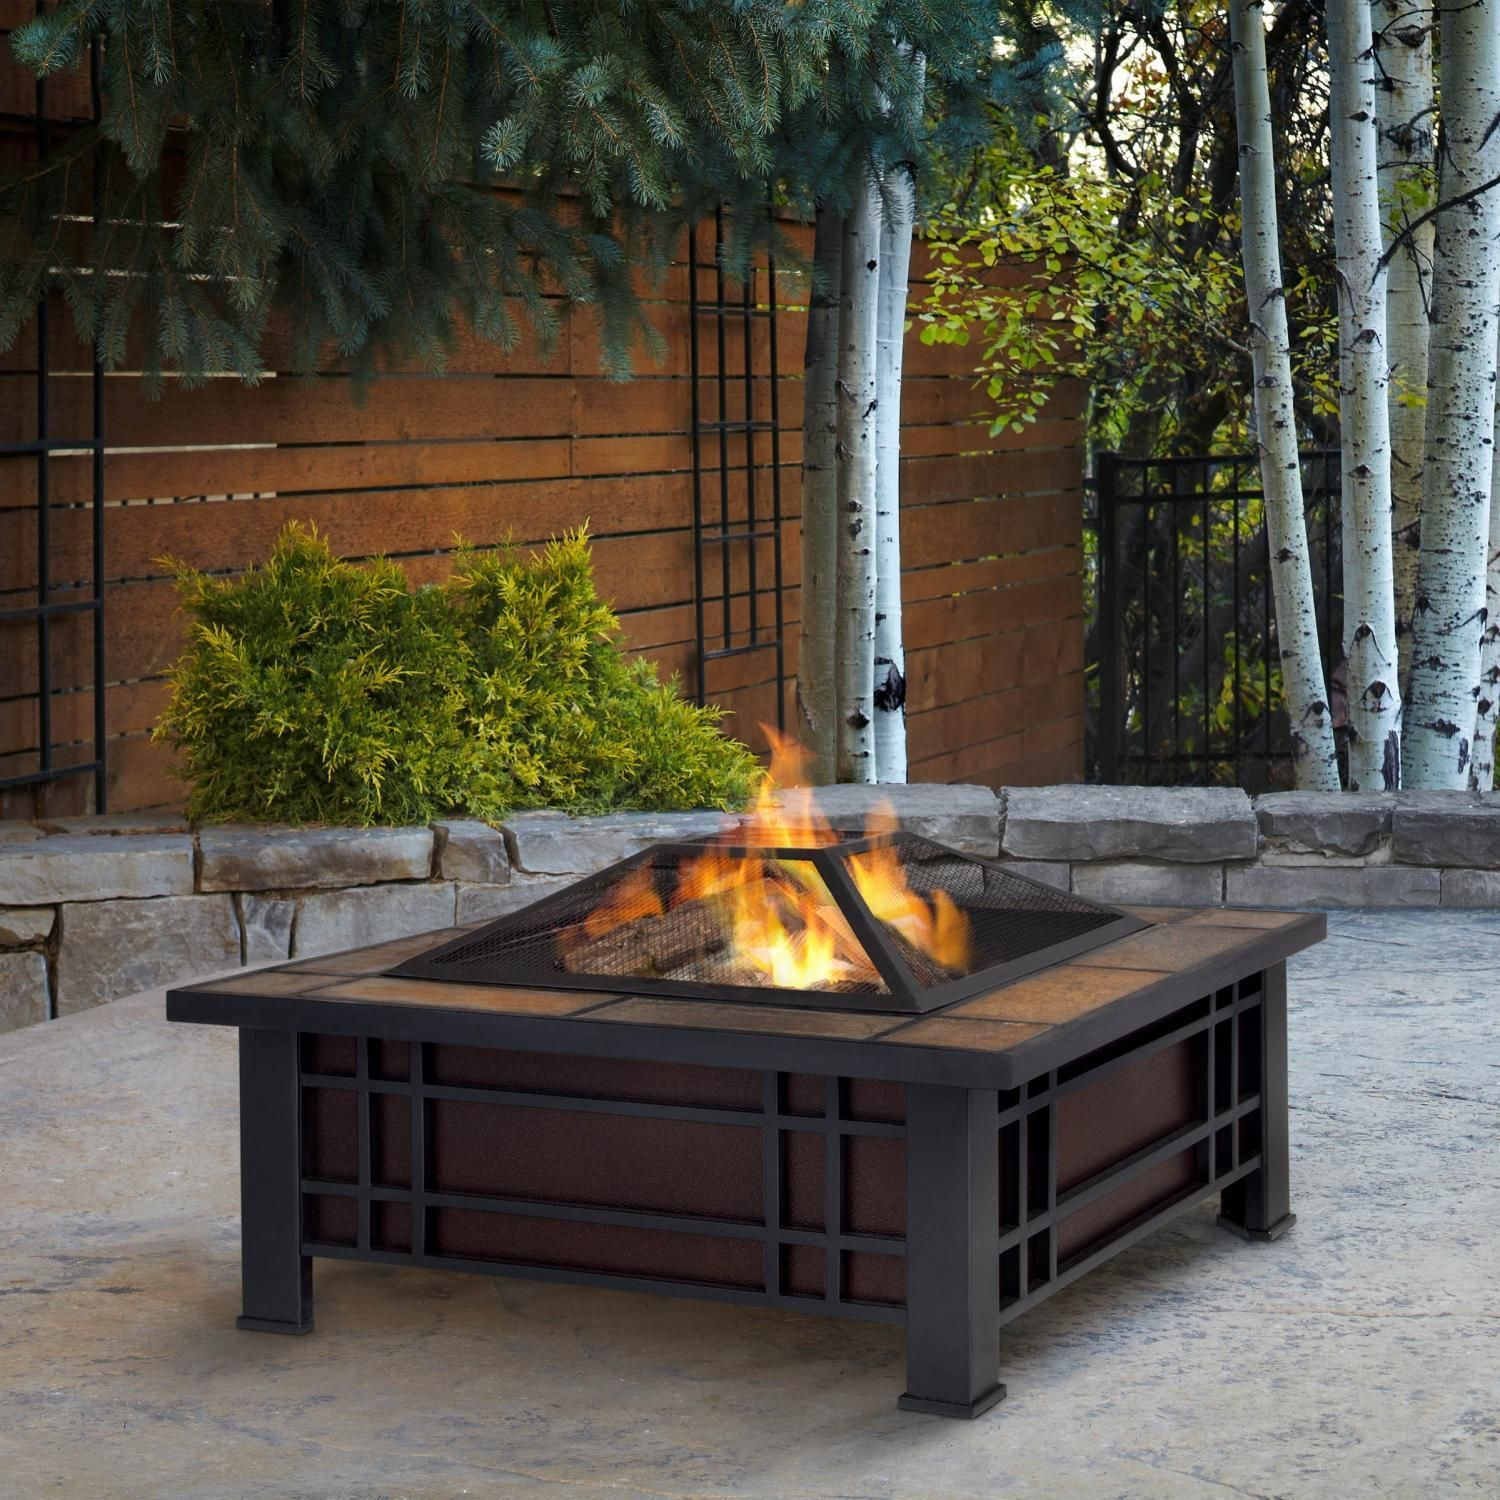 breathtaking round firepit area ideas for summer outdoor